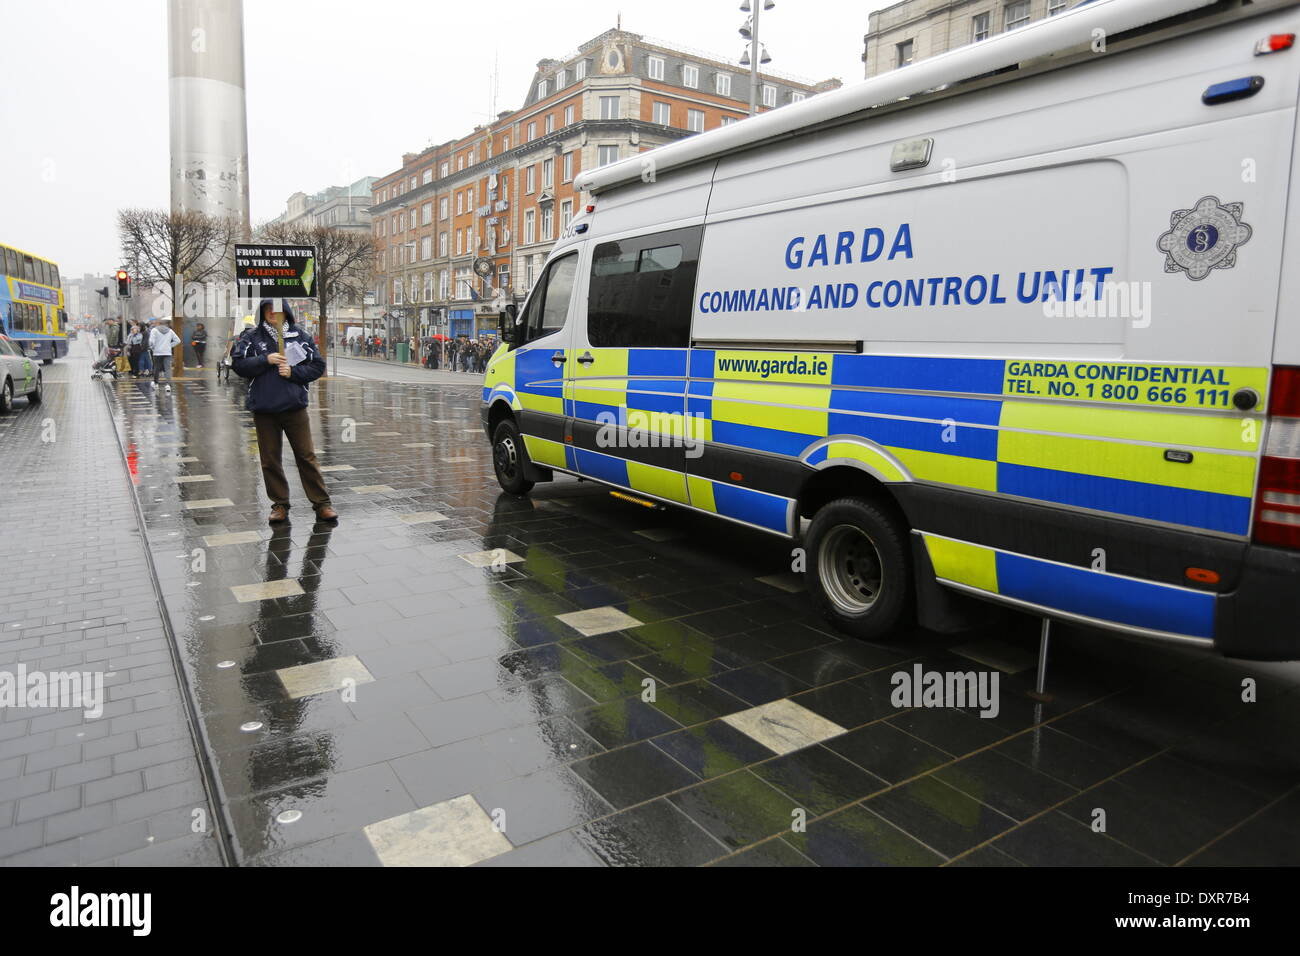 Dublin, Ireland. 29th March 2014. An activists stands next to a Garda (Irish Police) Command and Control Unit van, holding a poster that reads 'From the river to the sea, Palestine will be free'. The Ireland Palestine Solidarity Campaign (IPSC) protested in Dublin's O'Connell Street on the 38th anniversary of the 1976 land day protest against discrimination of Palestinians by Israel and the expansion of Israeli settlements in Palestinian territory. Credit:  Michael Debets/Alamy Live News - Stock Image